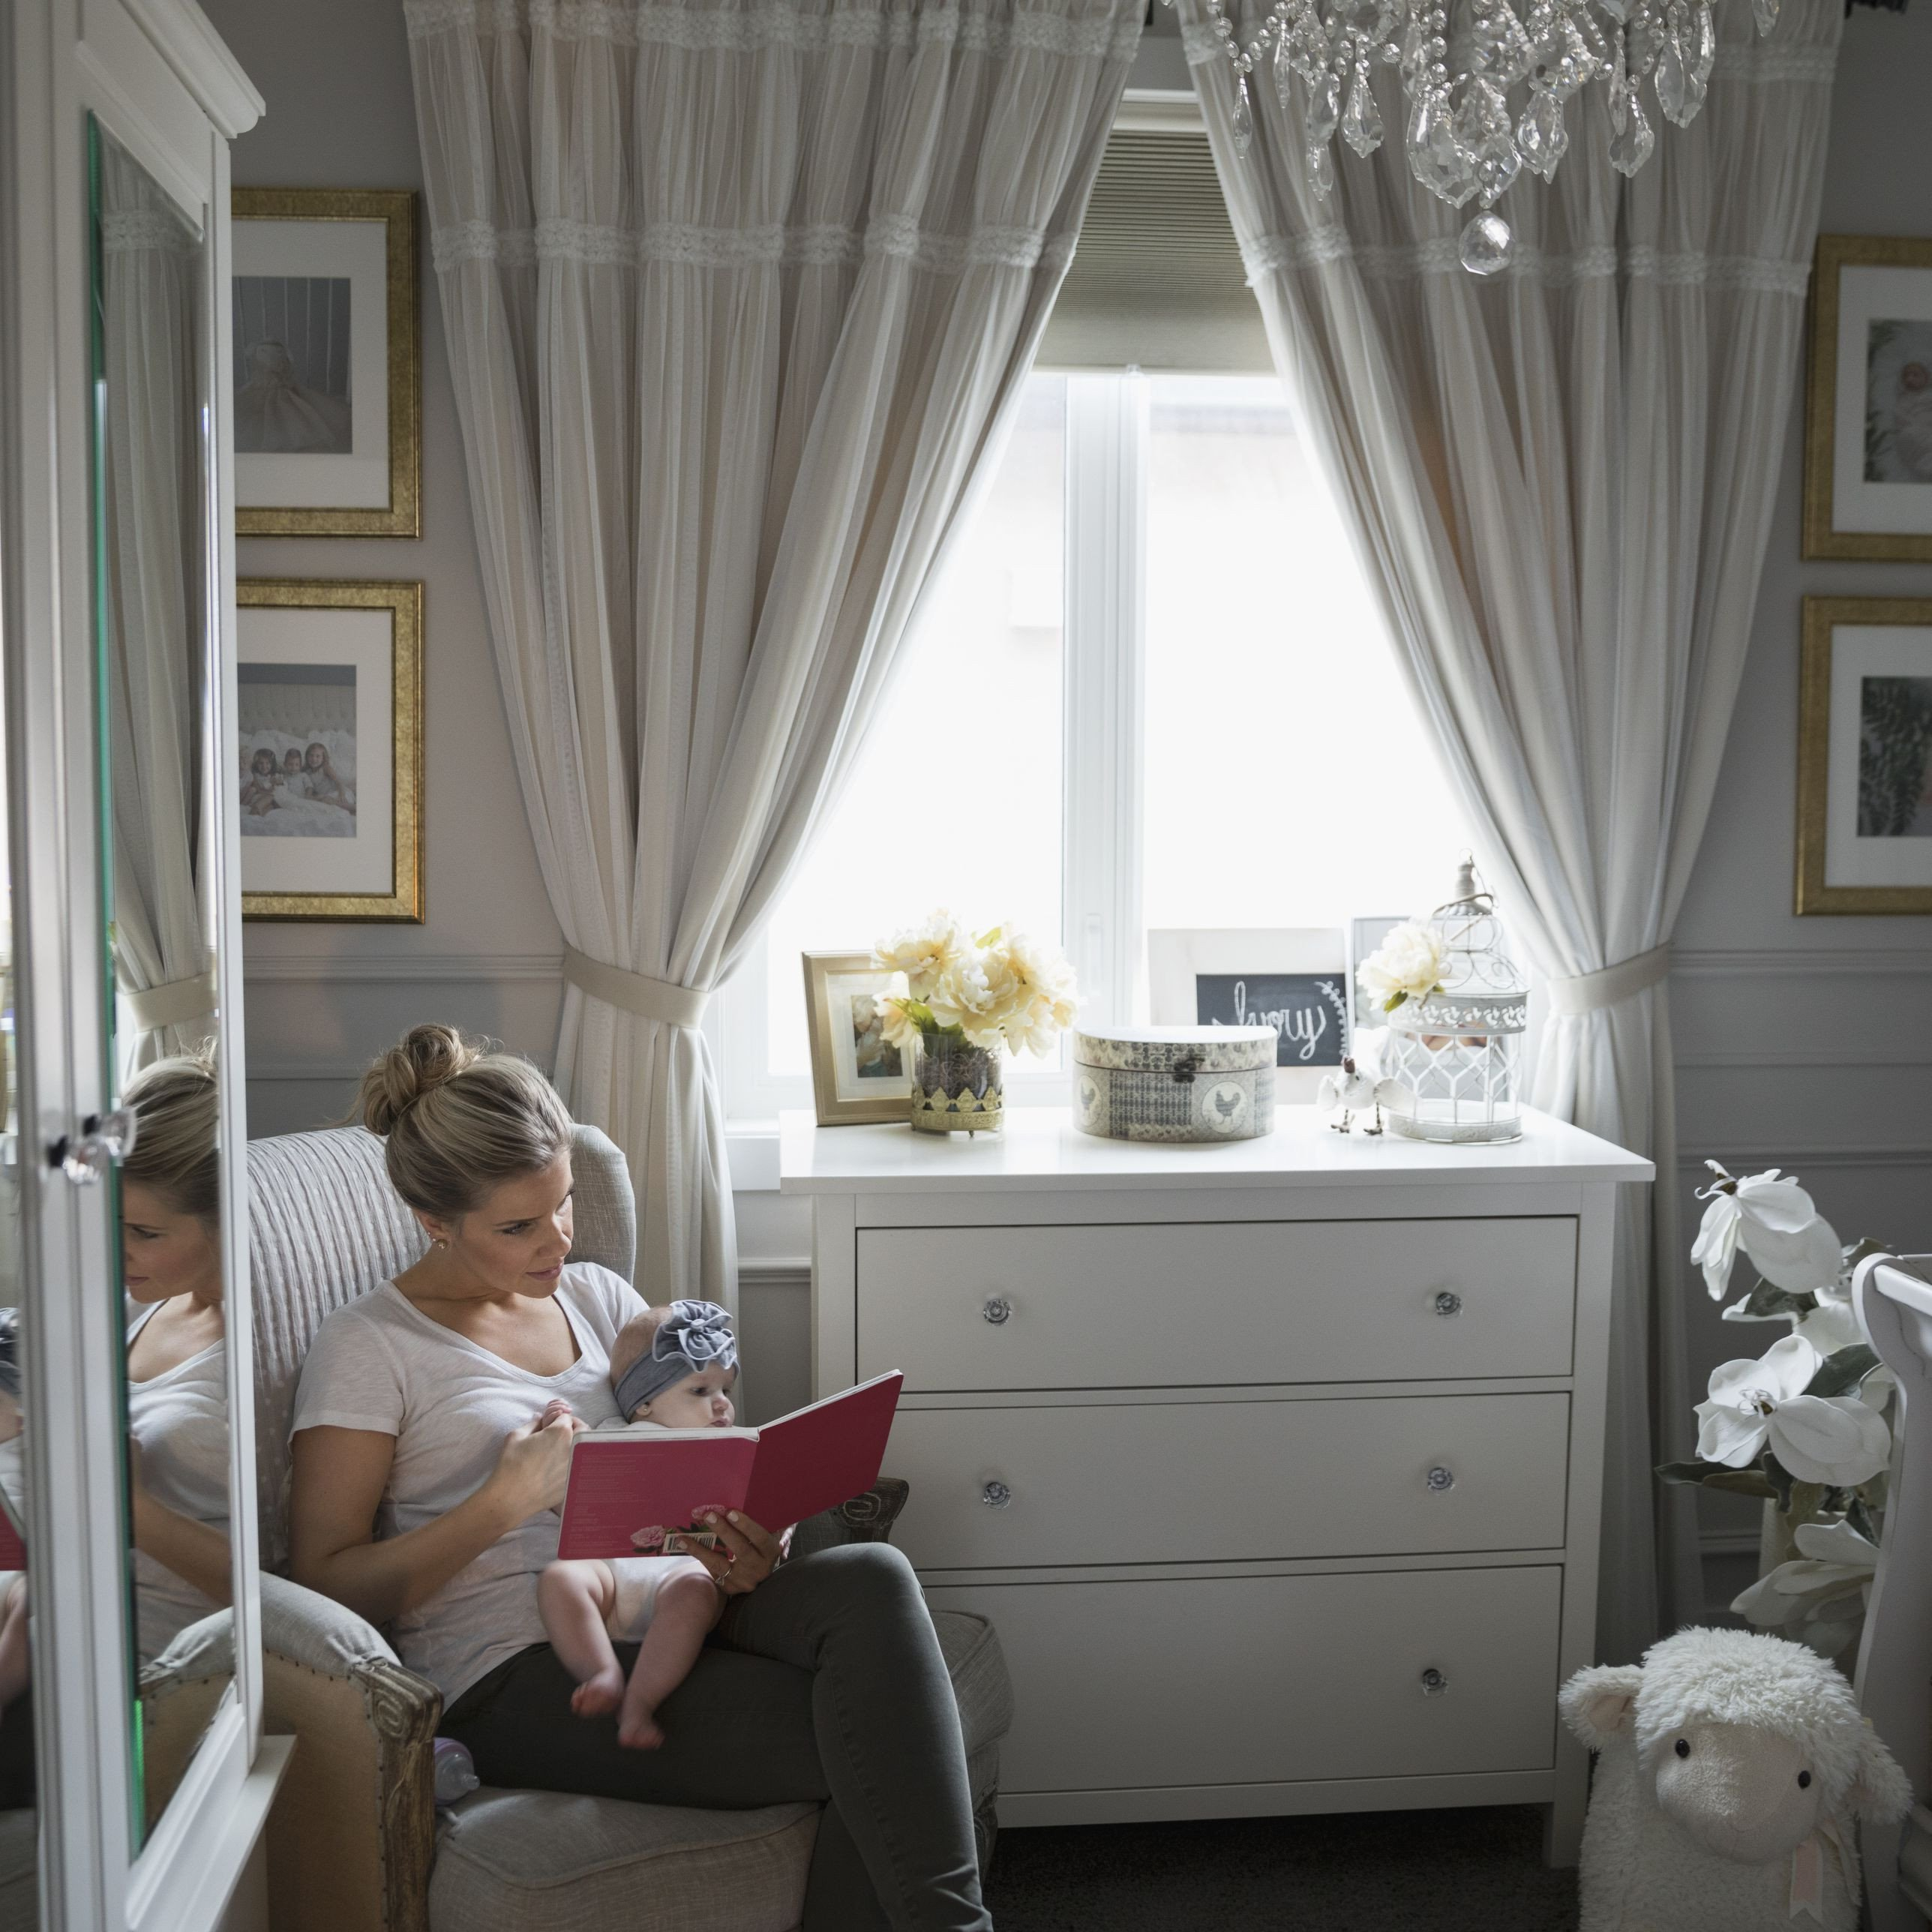 Curtains for Small Bedroom Windows Best Of Nursery Window Treatment Dos and Don Ts